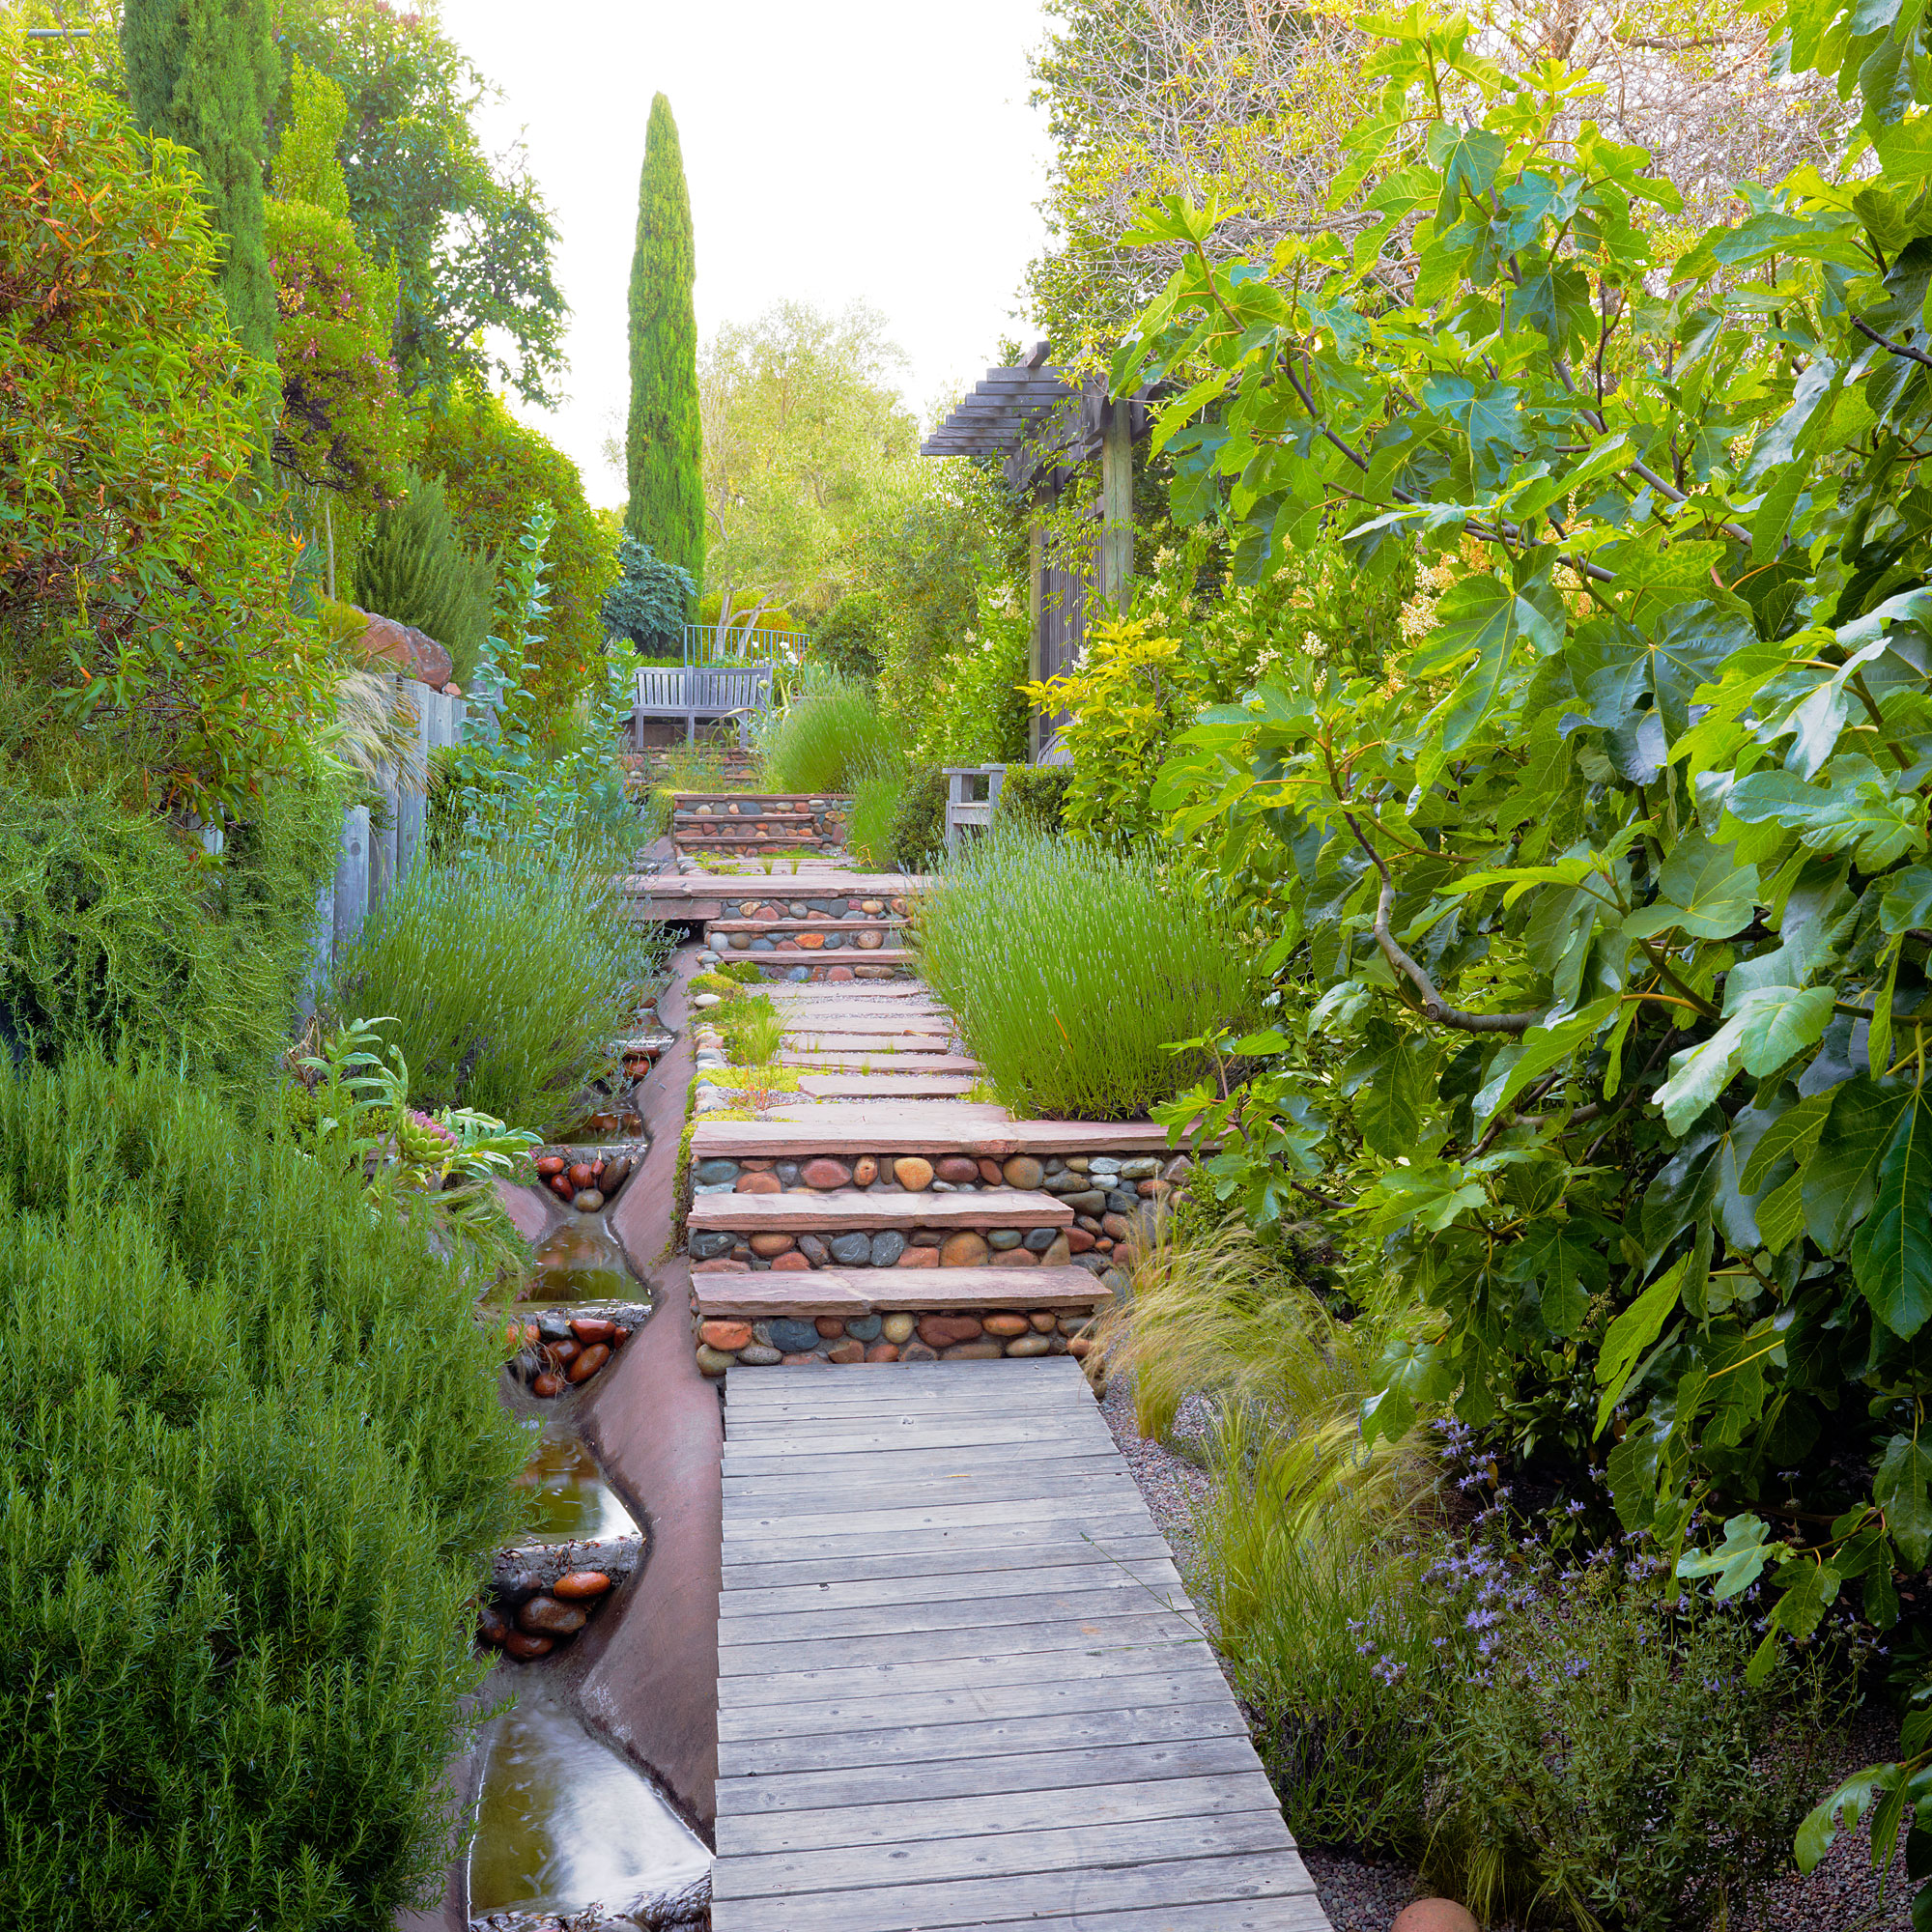 6 Lessons For Mediterranean-Climate Gardening